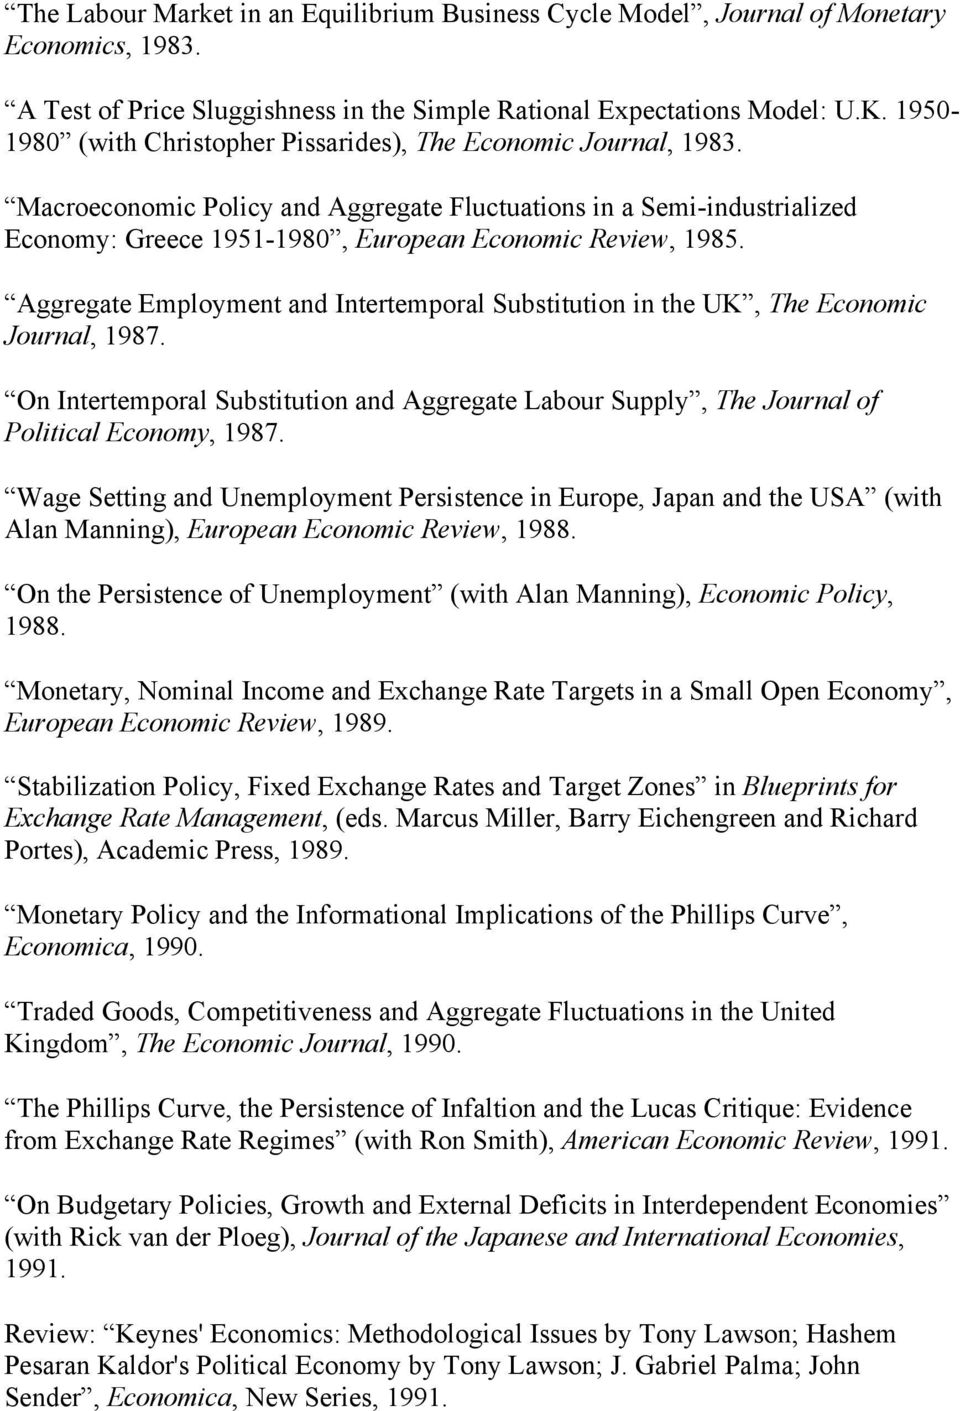 Aggregate Employment and Intertemporal Substitution in the UK, The Economic Journal, 1987. On Intertemporal Substitution and Aggregate Labour Supply, The Journal of Political Economy, 1987.